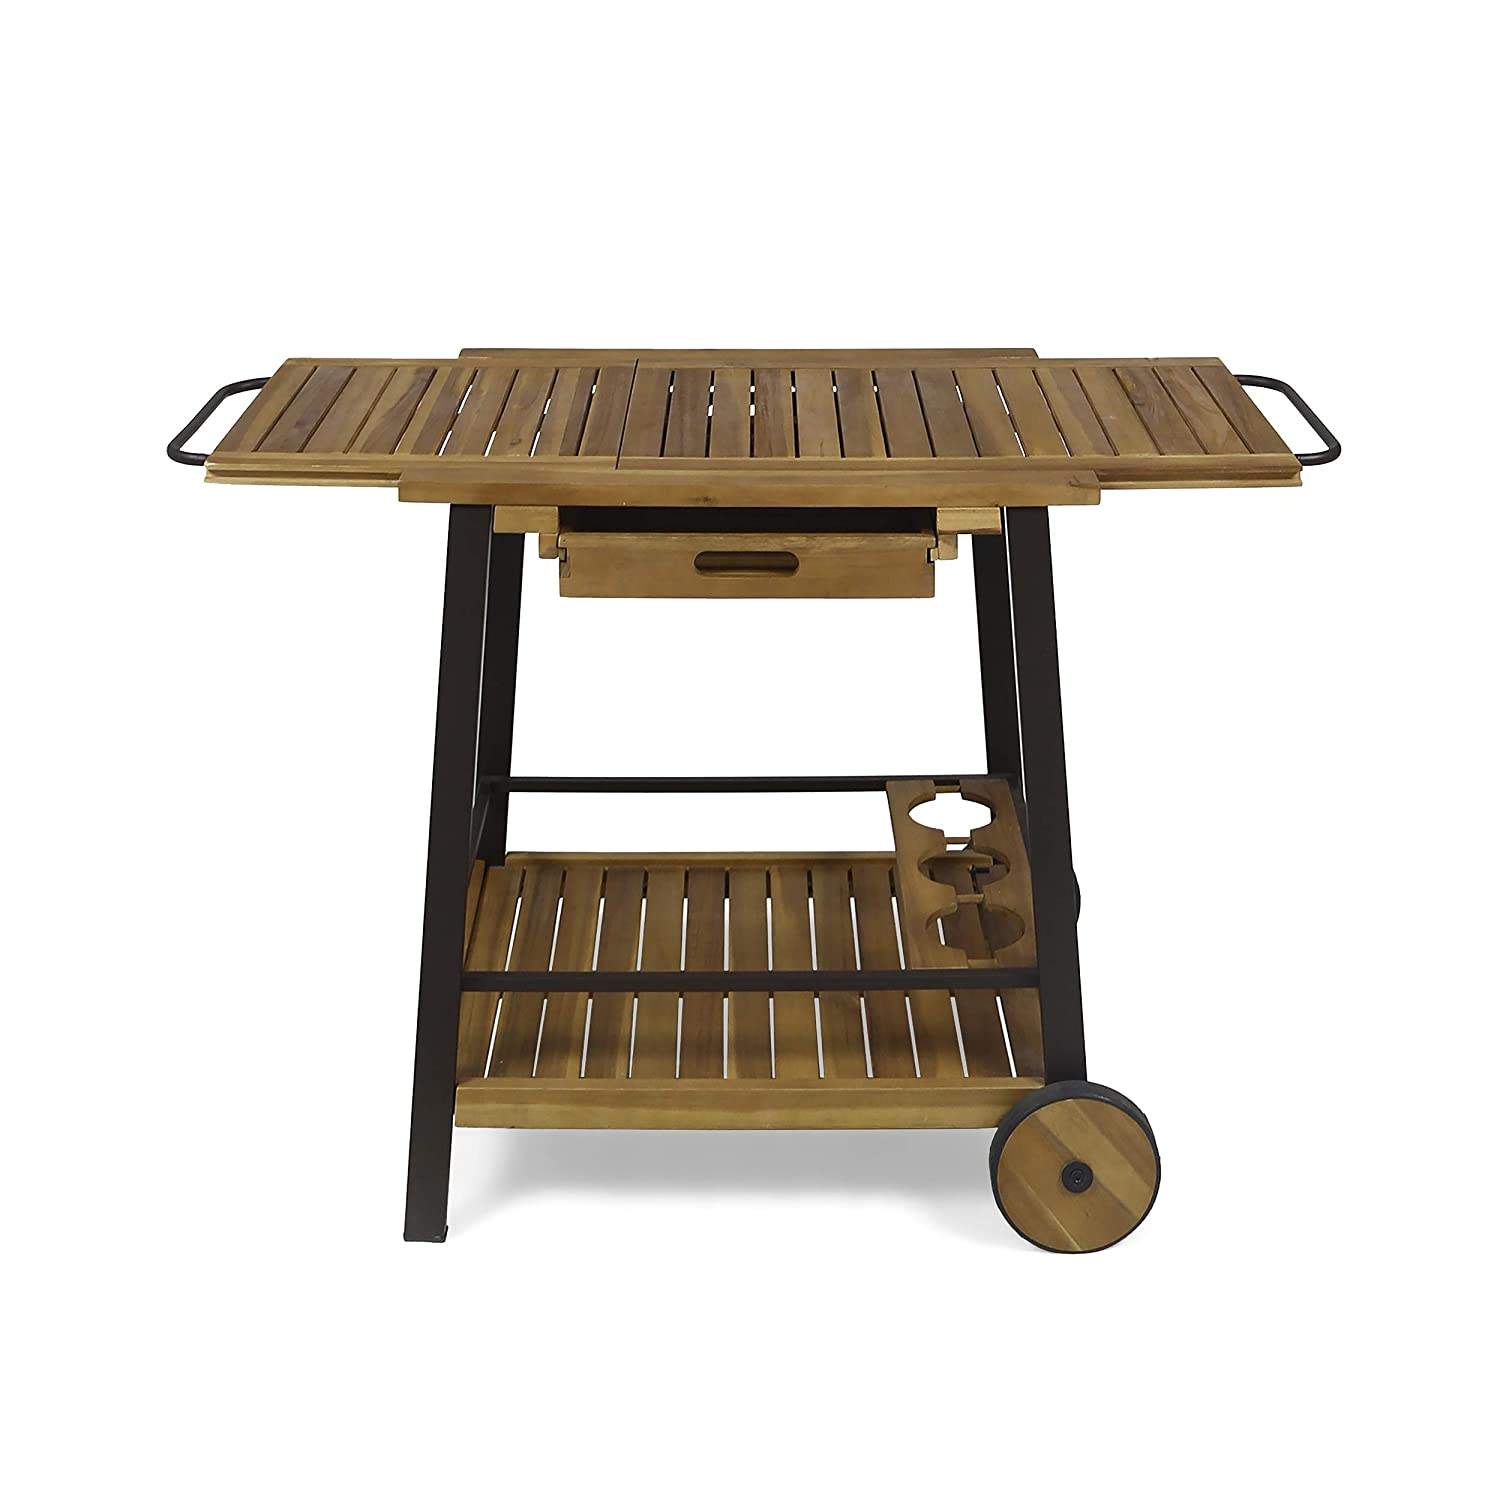 Christopher Knight Home Michaela Outdoor Wood and Iron Bar Cart with Tray Top and Bottle Holders, Teak Finish